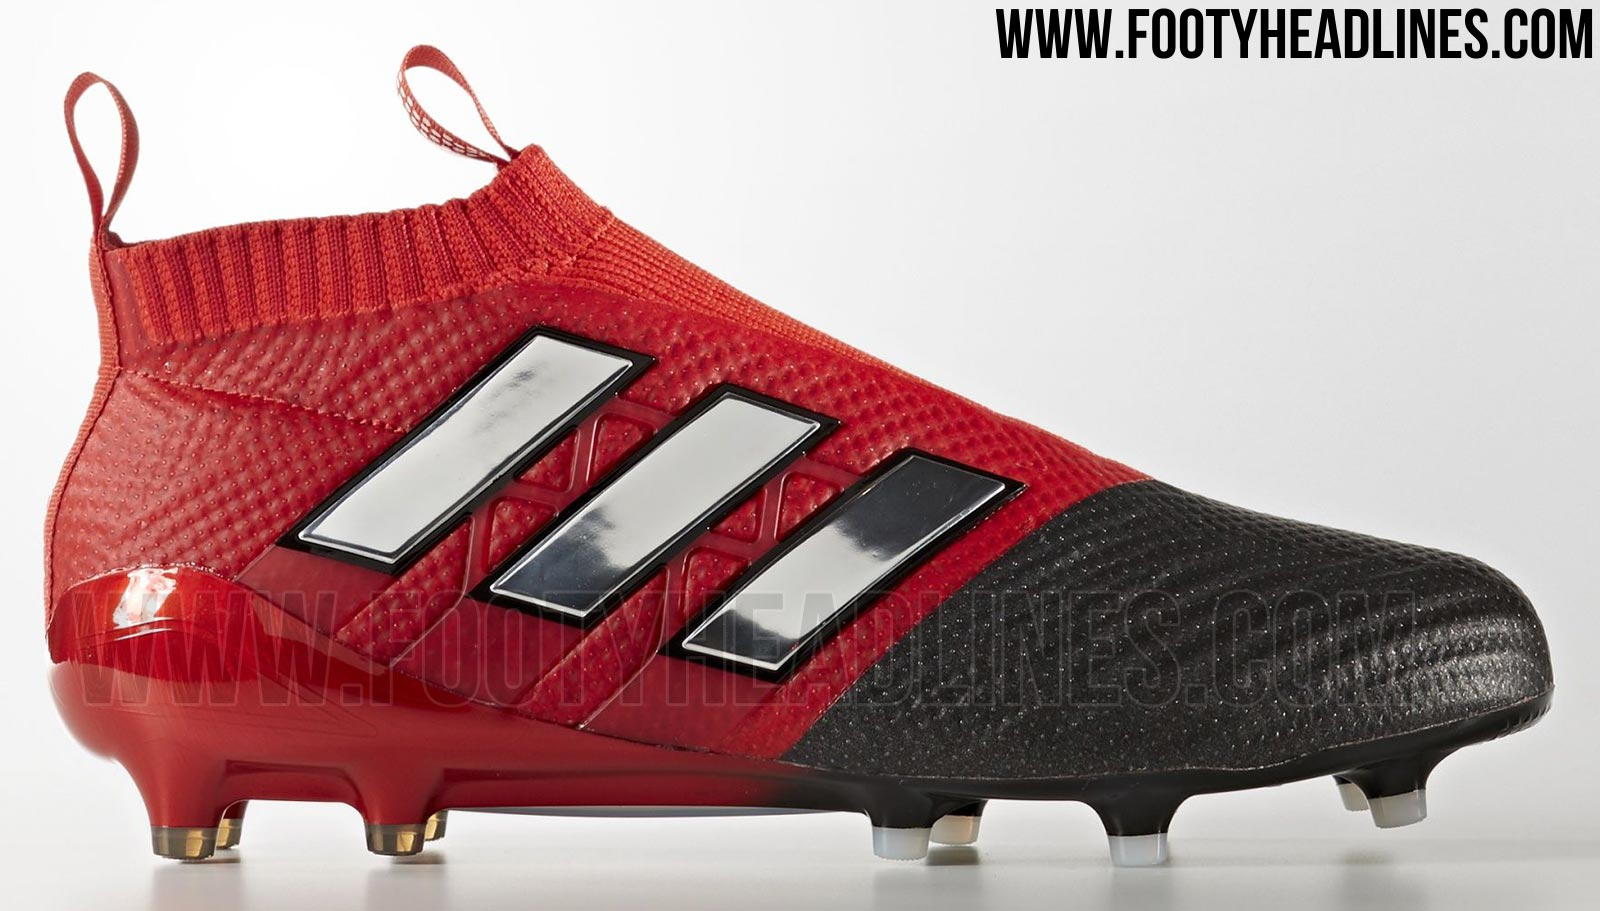 eb834eb523d FULL ADIDAS RED LIMIT PACK LEAKED. Adidas will release its latest football  boot ...